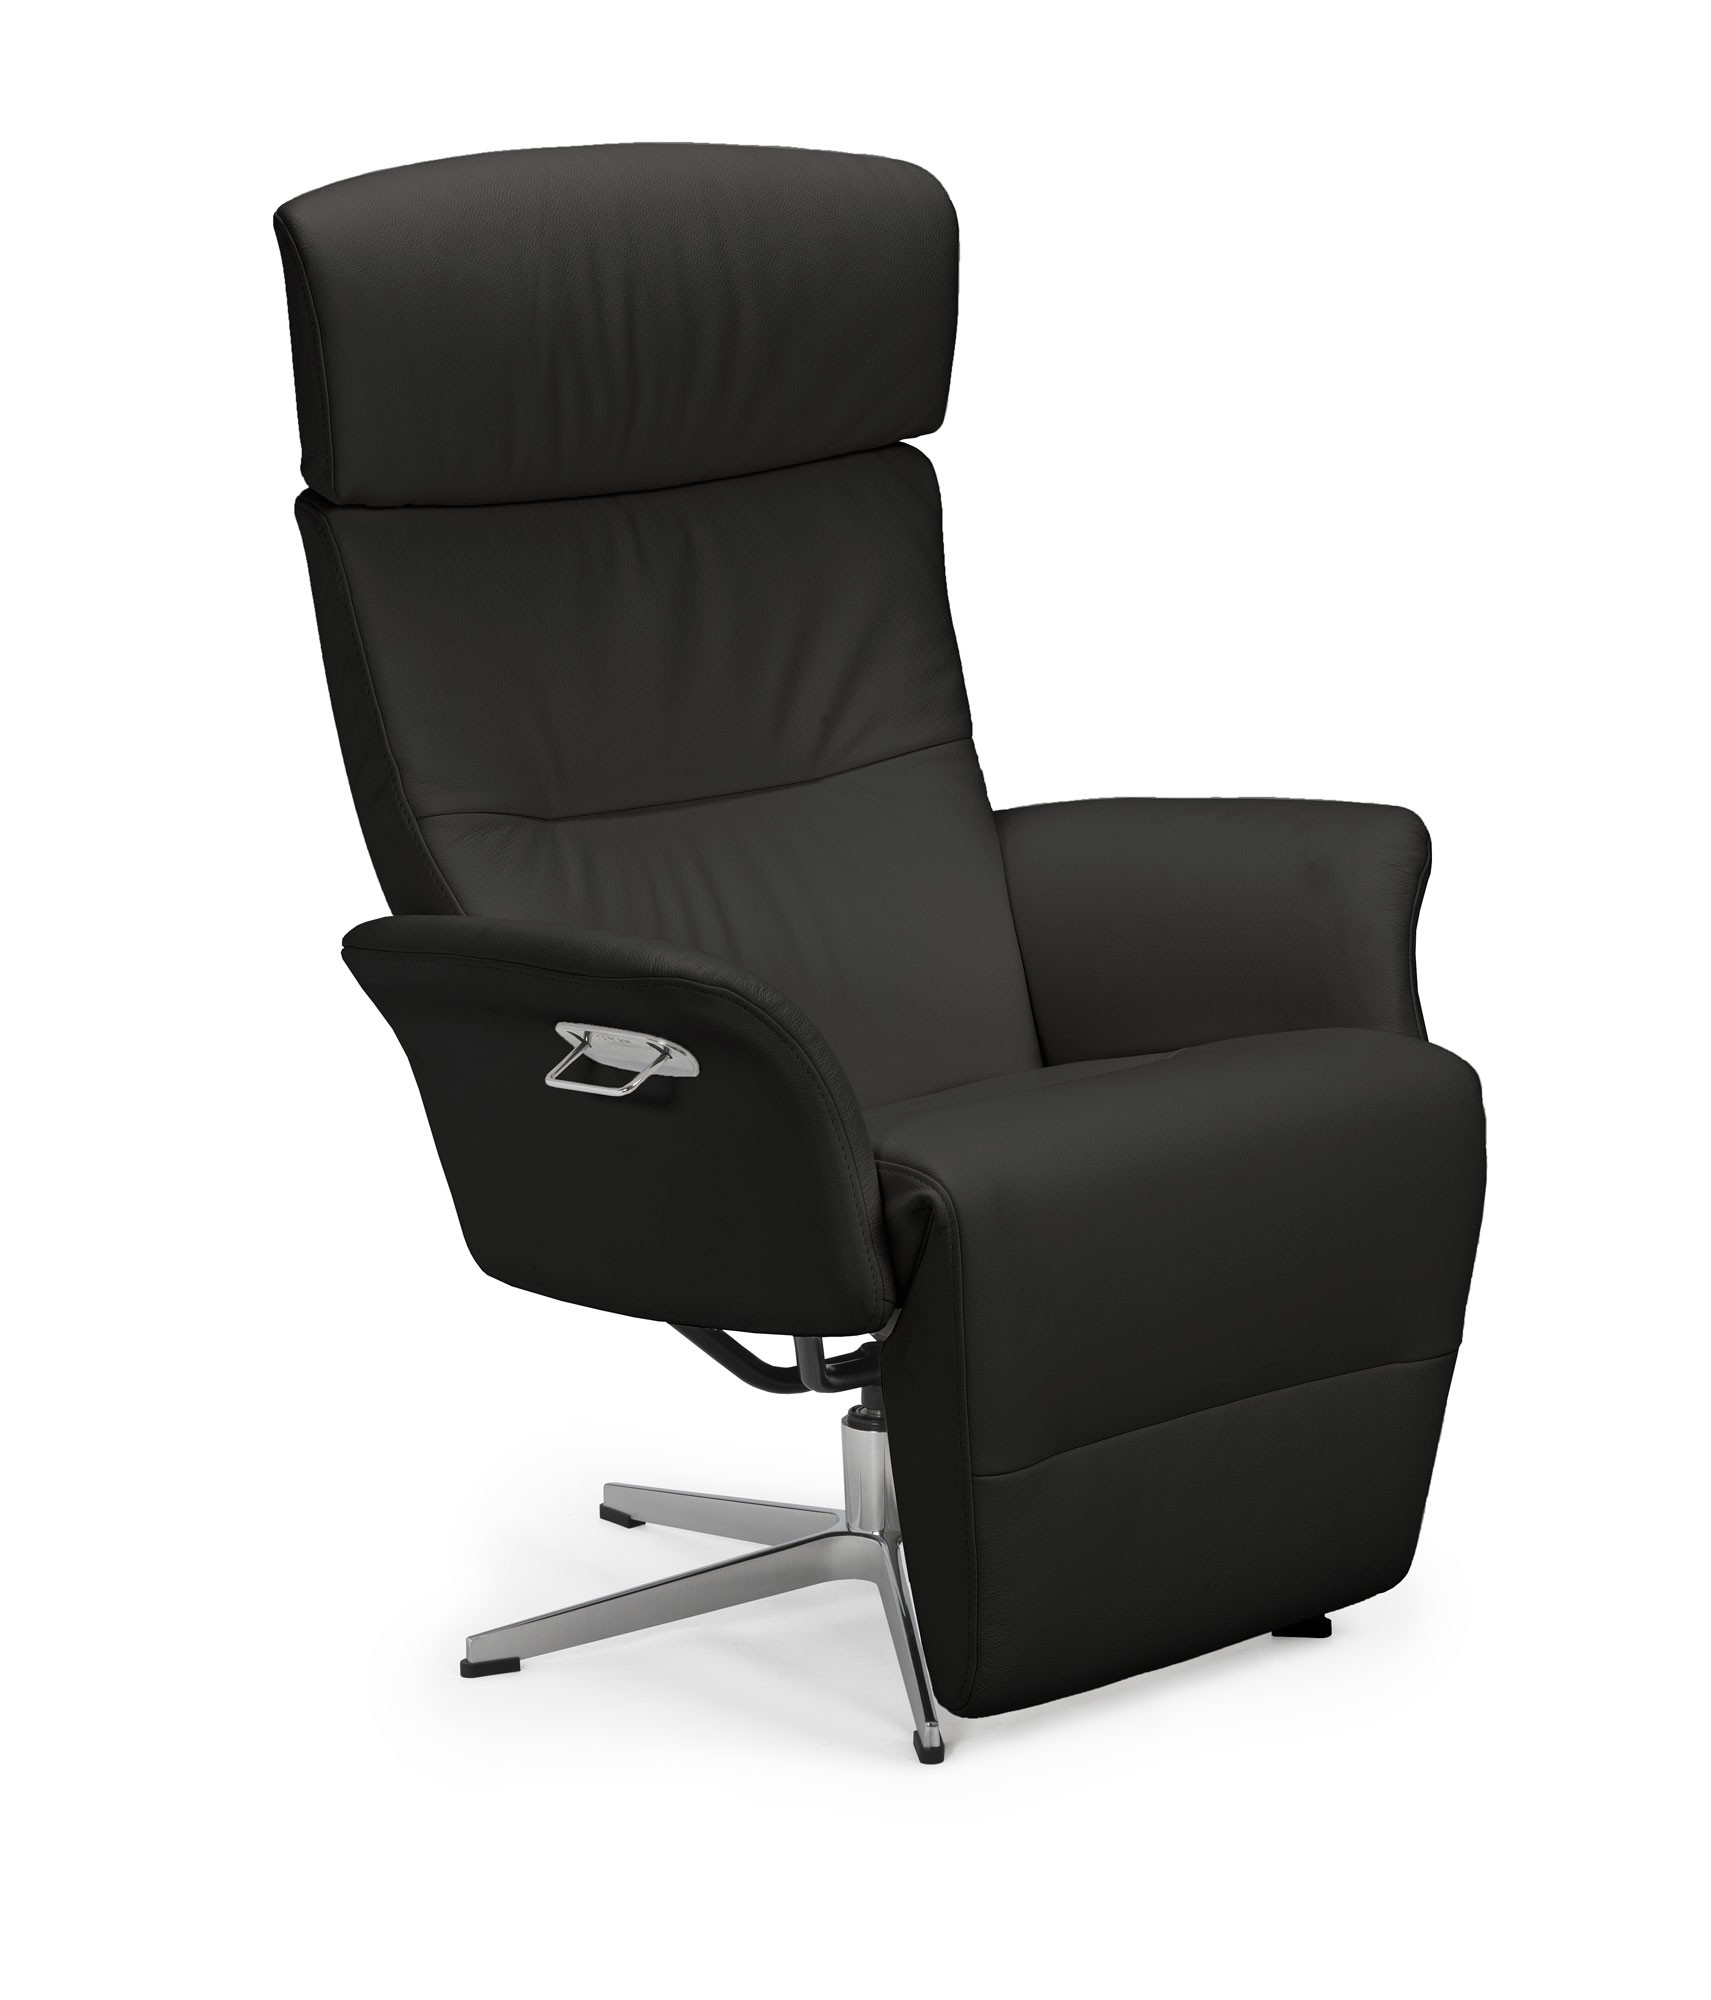 Master Crossfoot Swivel Chair | Tr Hayes – Furniture Store, Bath With Leather Black Swivel Chairs (Image 10 of 20)